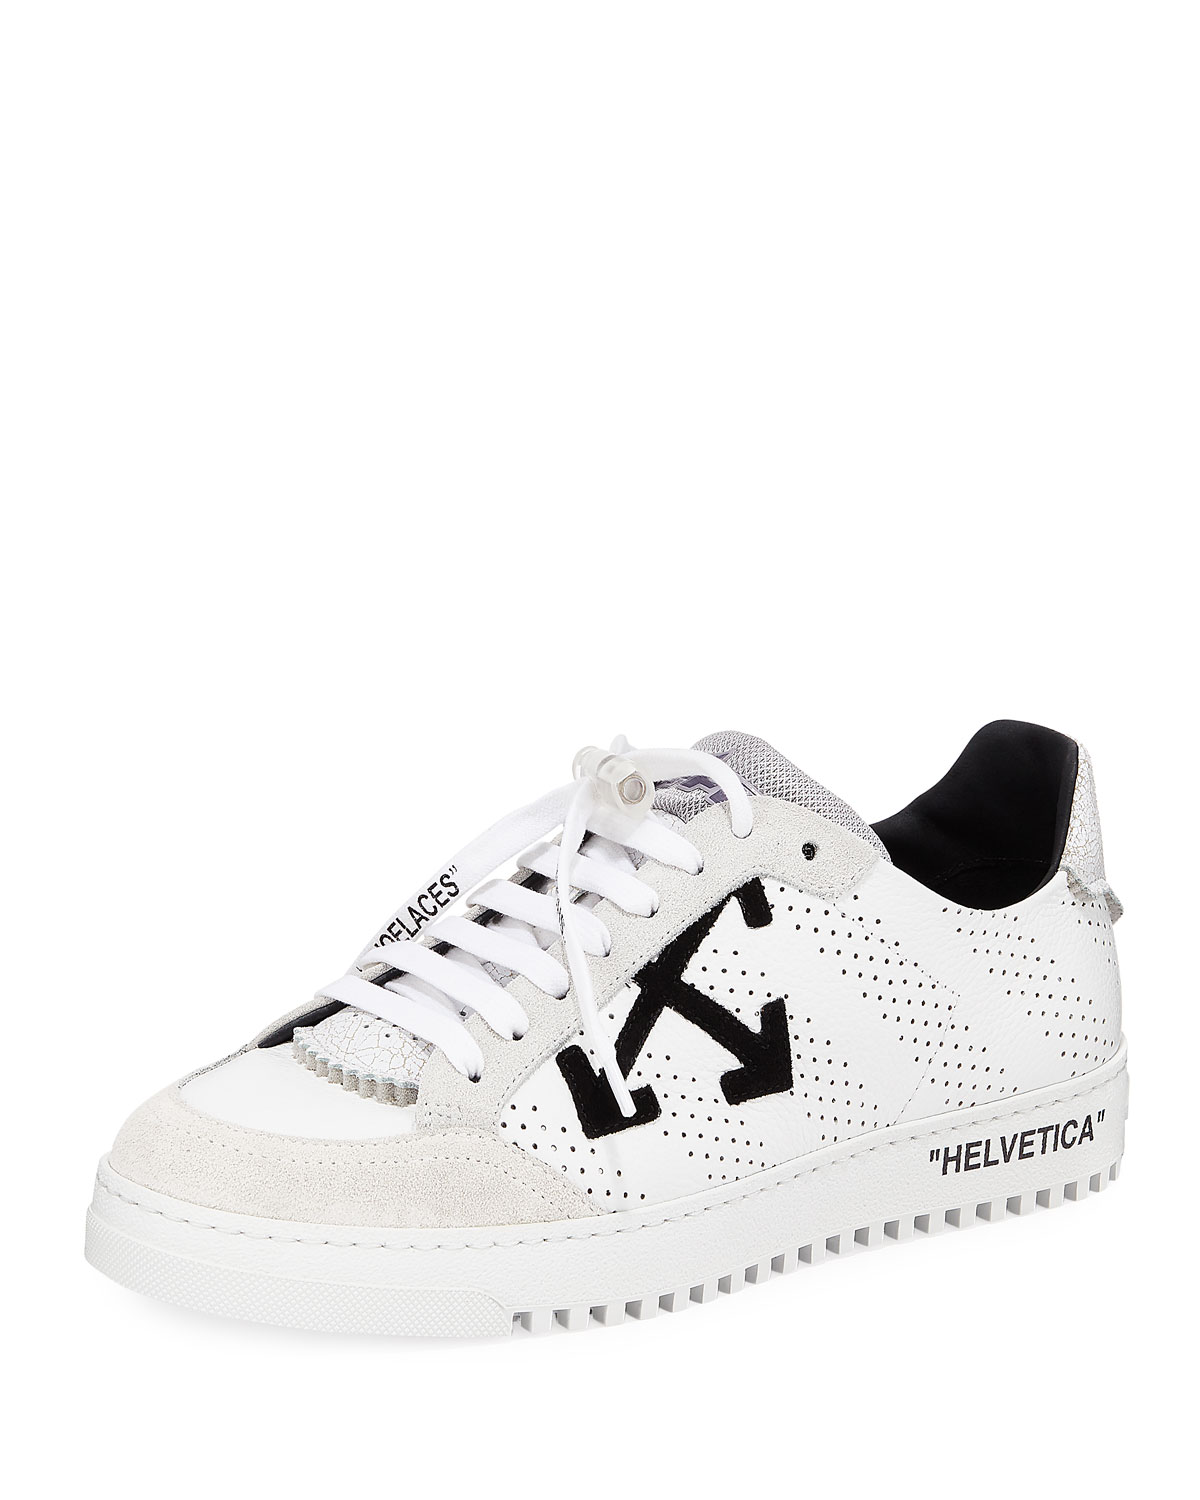 25ad60129f15 Off-White Men s 2.0 Perforated Leather   Suede Low-Top Sneakers ...